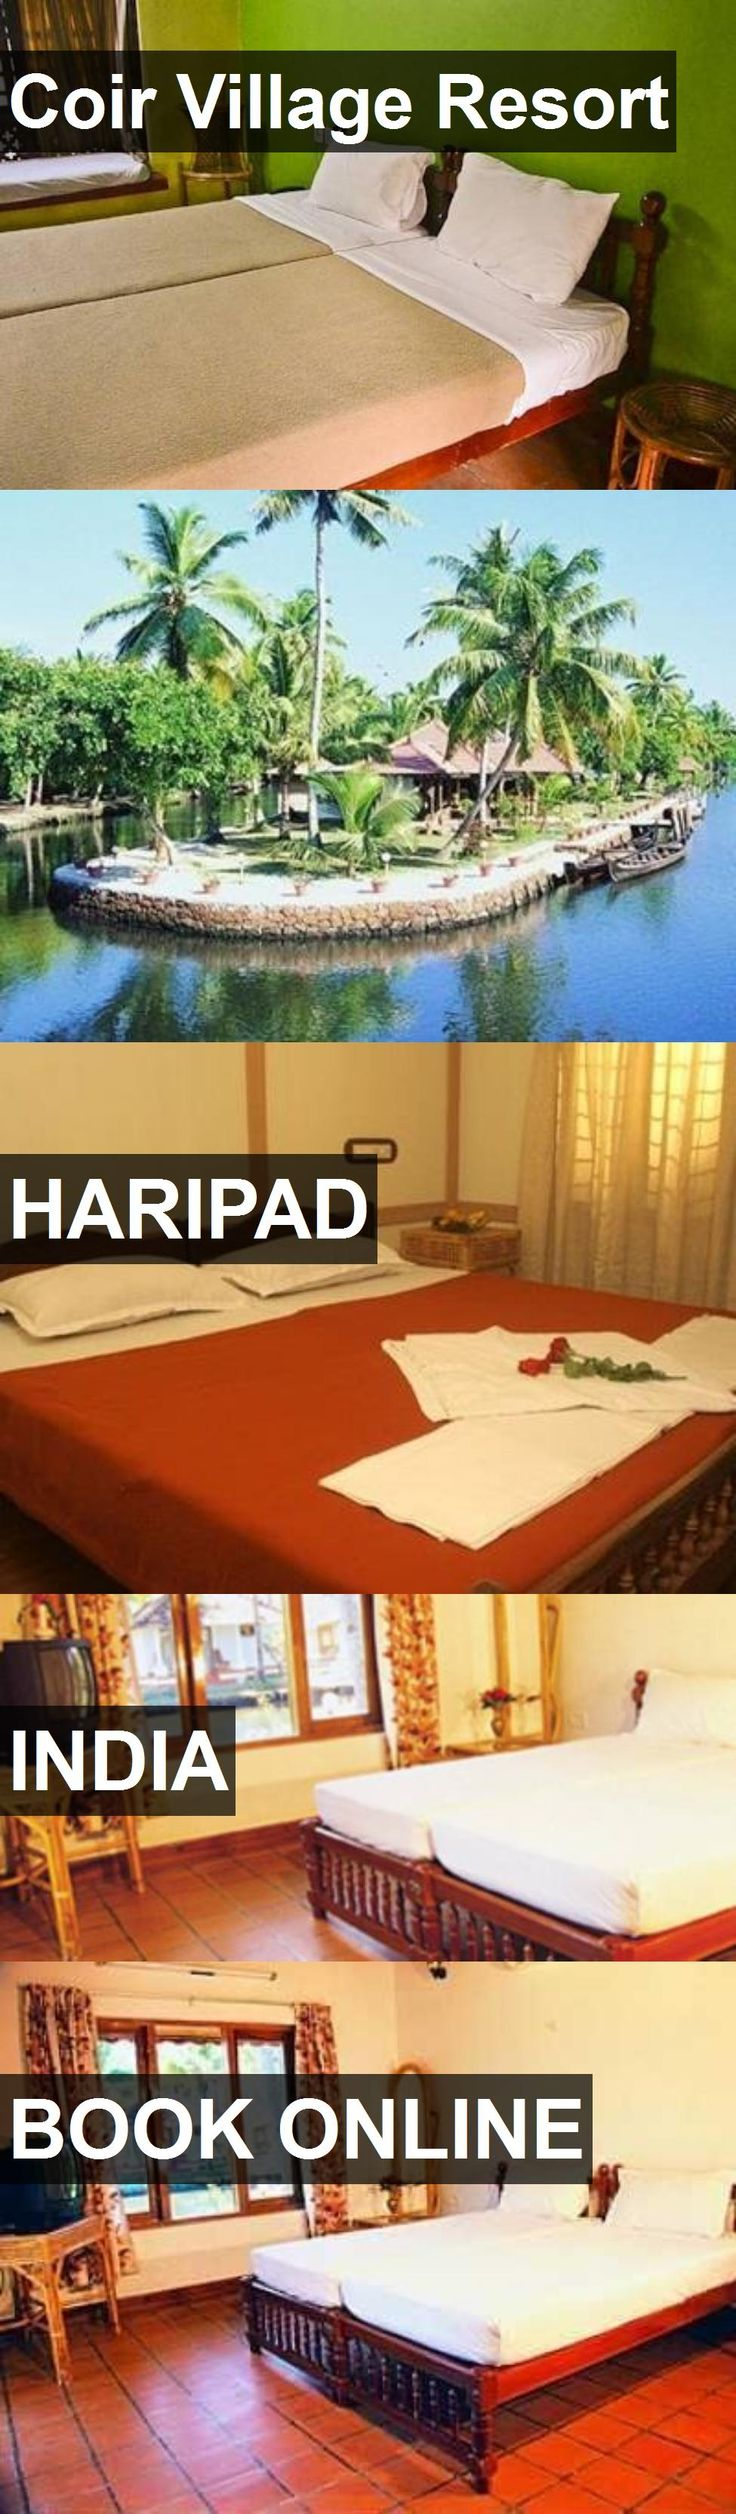 Hotel Coir Village Resort in Haripad, India. For more information, photos, reviews and best prices please follow the link. #India #Haripad #travel #vacation #hotel